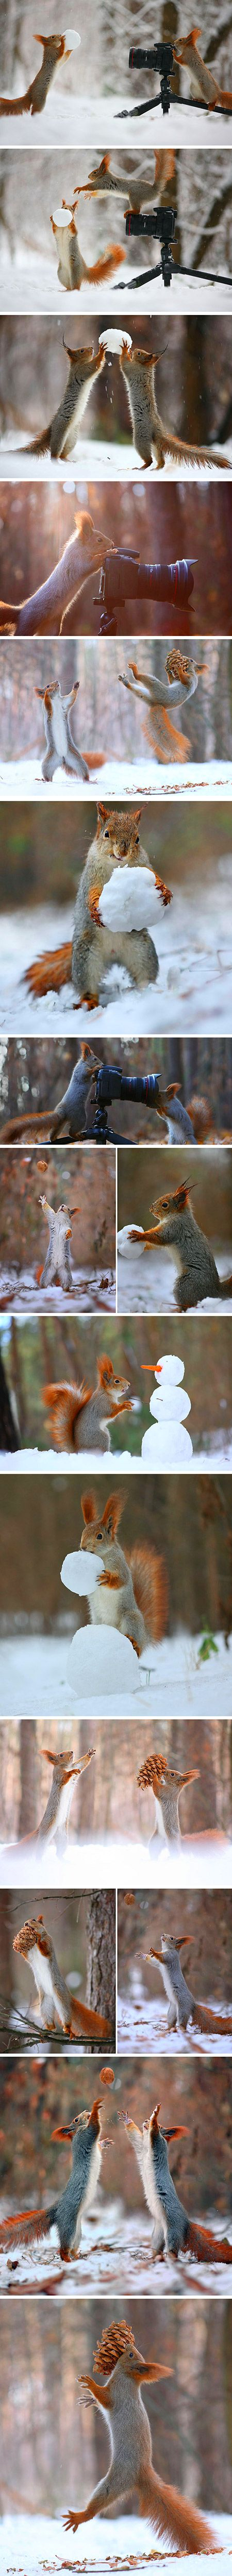 .Talented Russian nature photographer Vadim Trunov has had close encounters with squirrels before, but this is the first time we've seen his photos of squirrels playing or shooting photos of each other! The photographer recently published some photos he's captured of squirrels that seem to be building snowmen or playing volleyball with nuts.